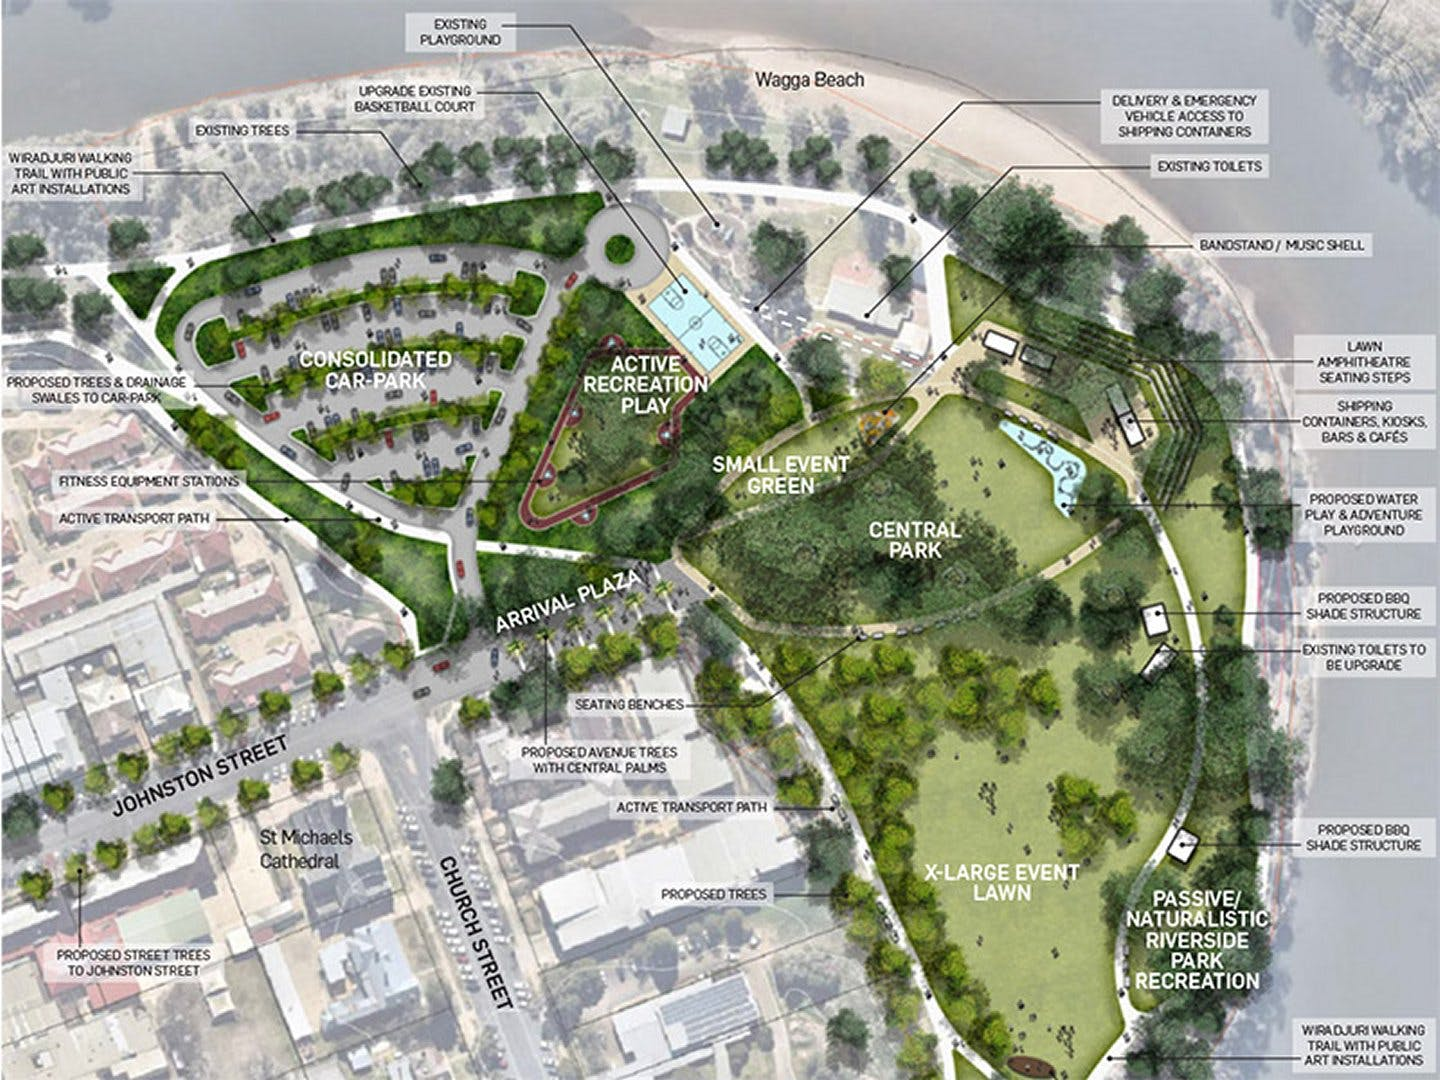 Wagga Wagga Riverside Redevelopment Stage 2 Concept